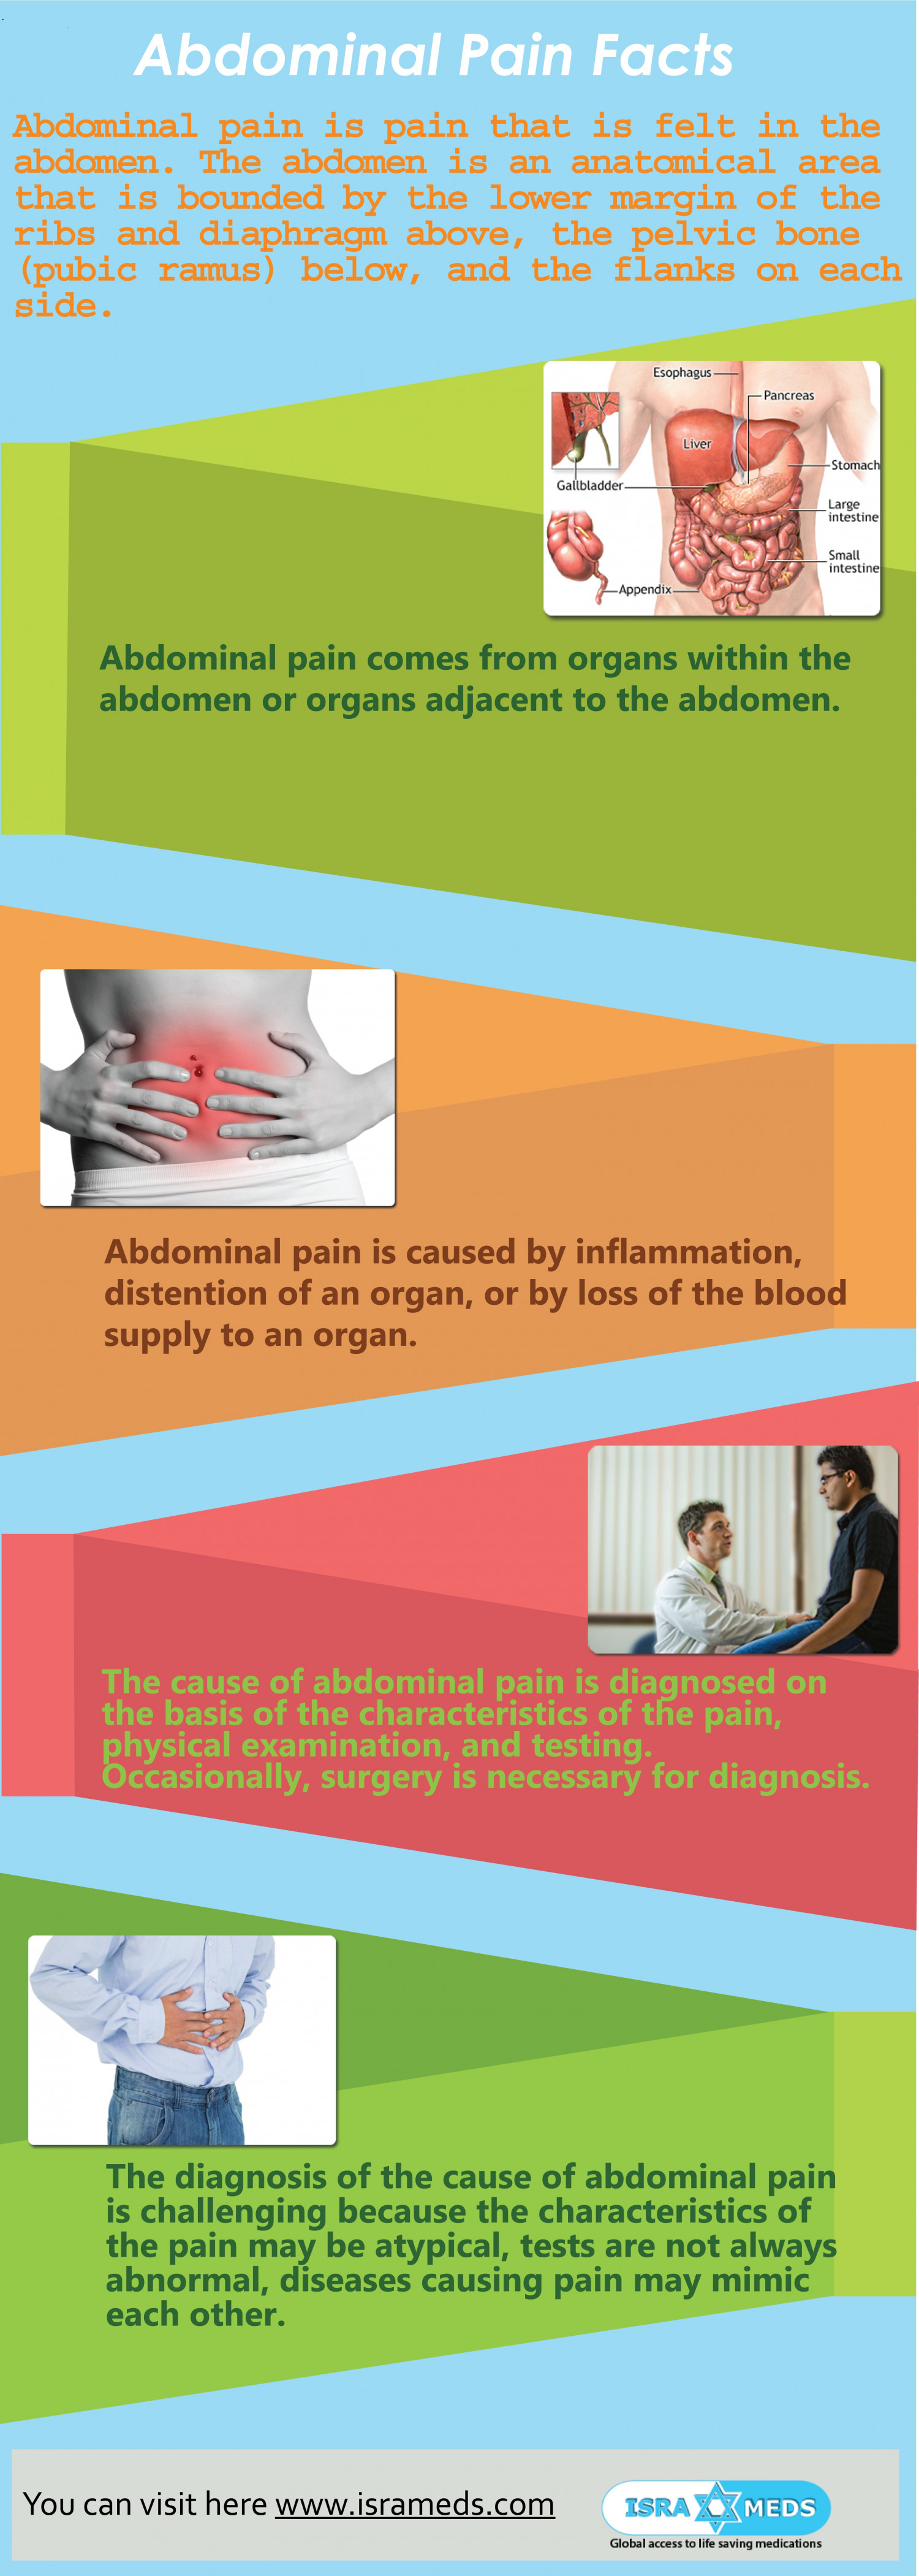 Abdominal Pain Facts Infographic